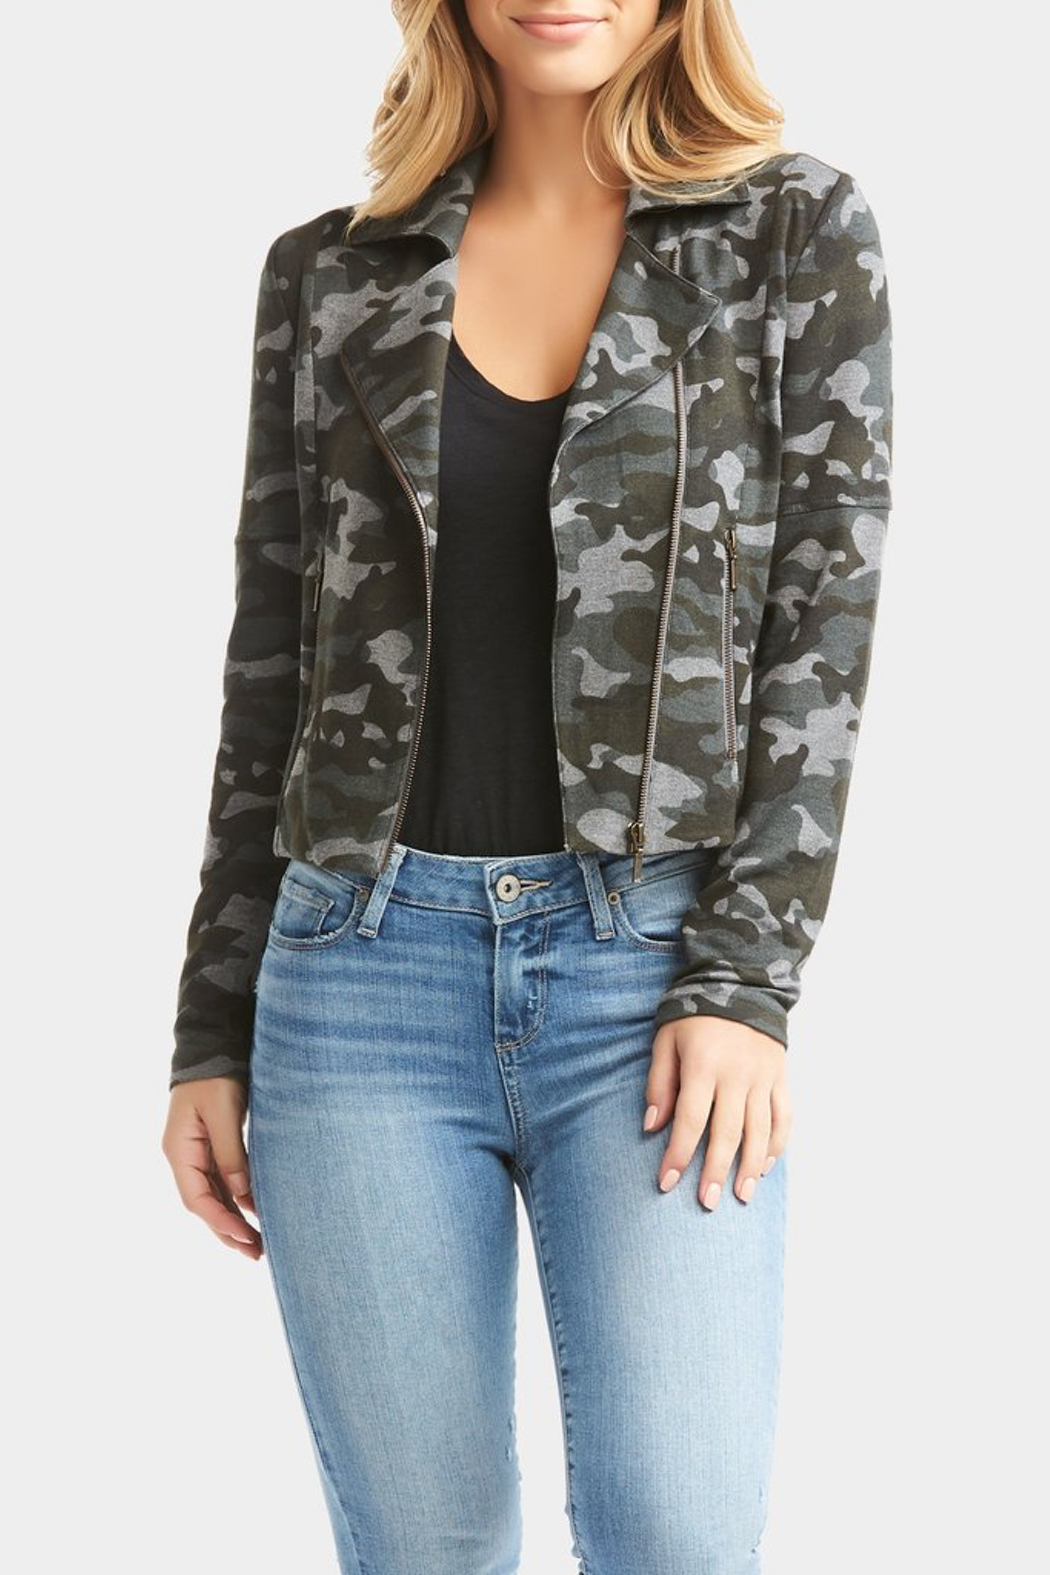 Tart Collections Gracia French Terry Moto Jacket - Front Full Image